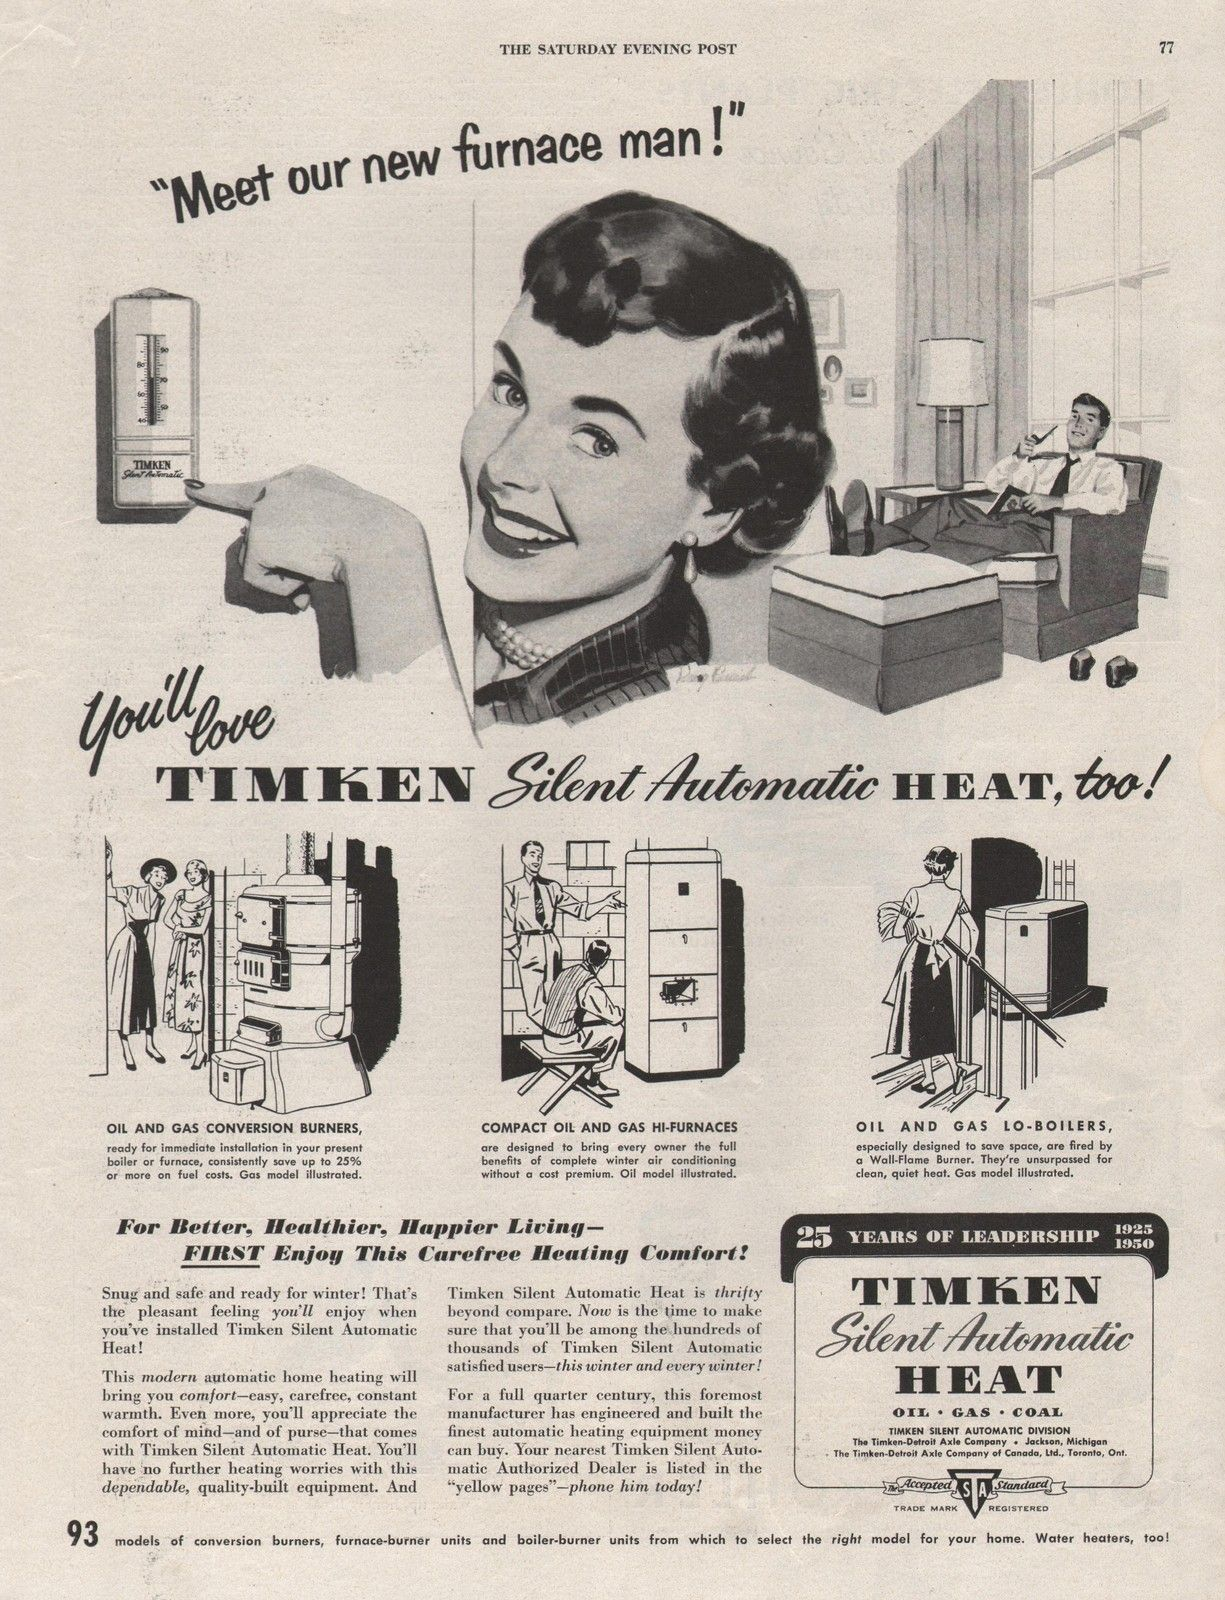 1950 Vintage Timken Silent Automatic Heat Meet Our New Furnace Man Print Ad Ebay Vintage Advertisements Vintage Ads Vintage Advertising Art